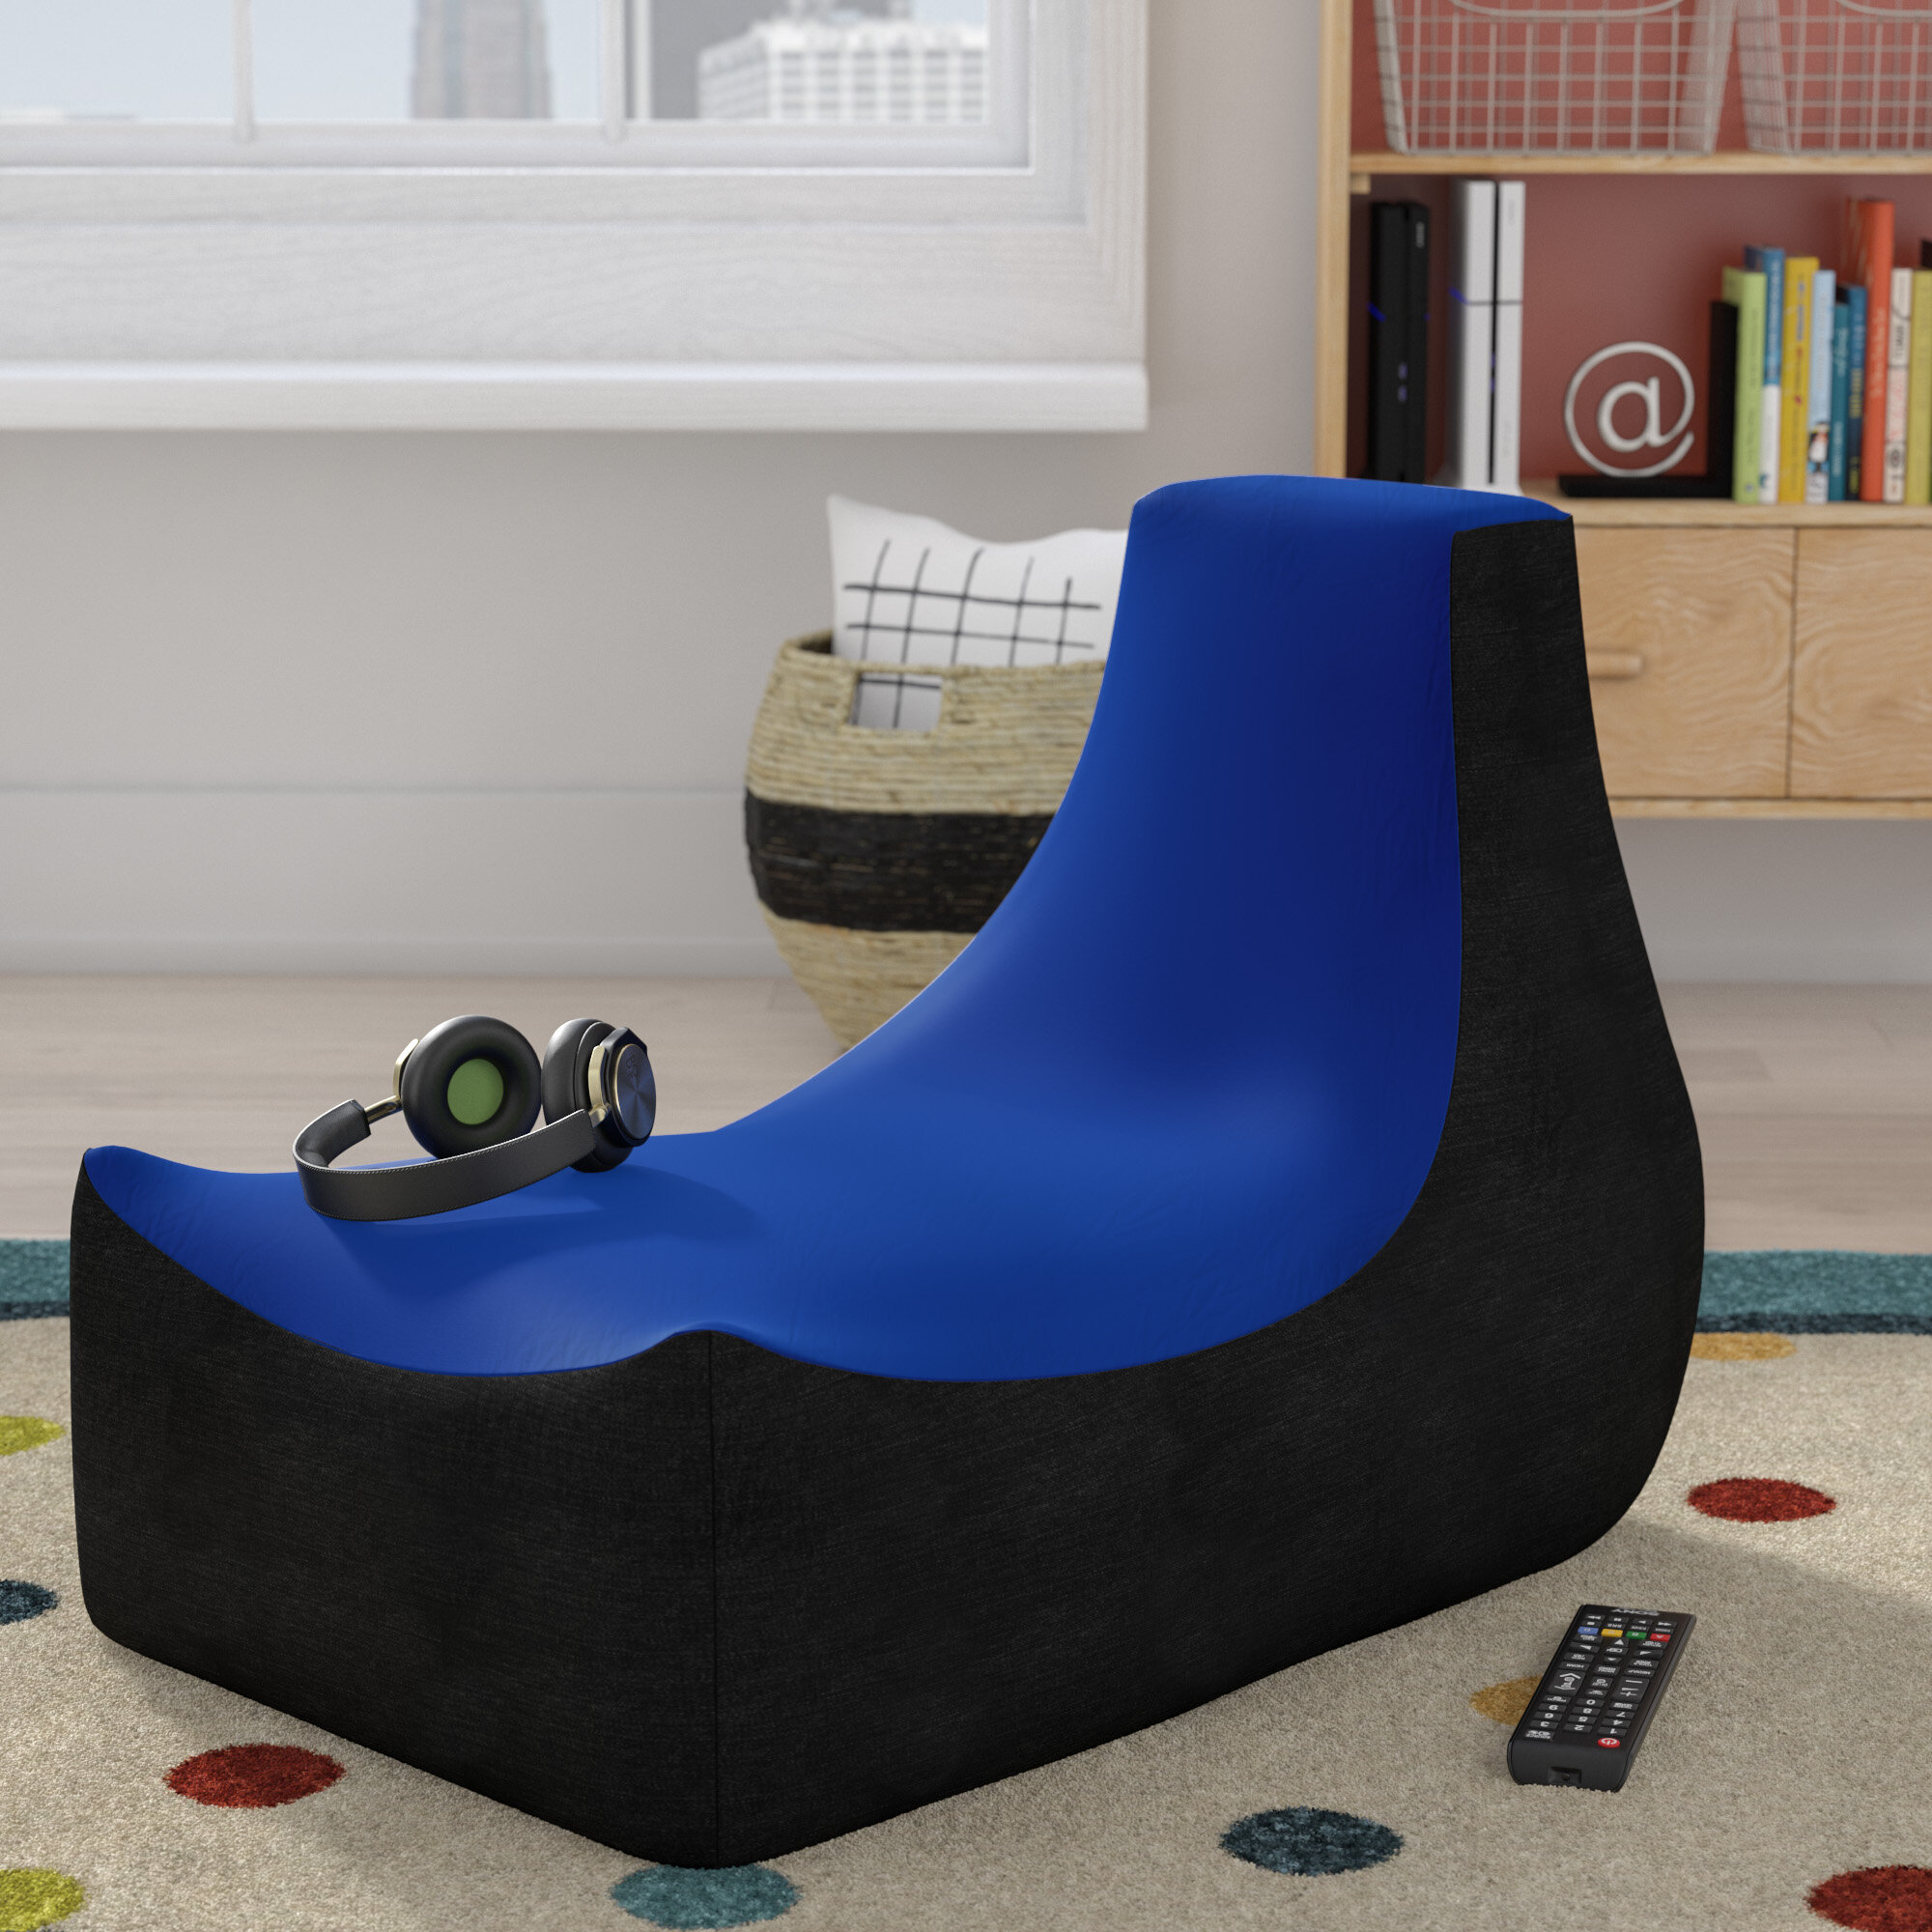 Pleasing Bean Bag Floor Game Chair Caraccident5 Cool Chair Designs And Ideas Caraccident5Info